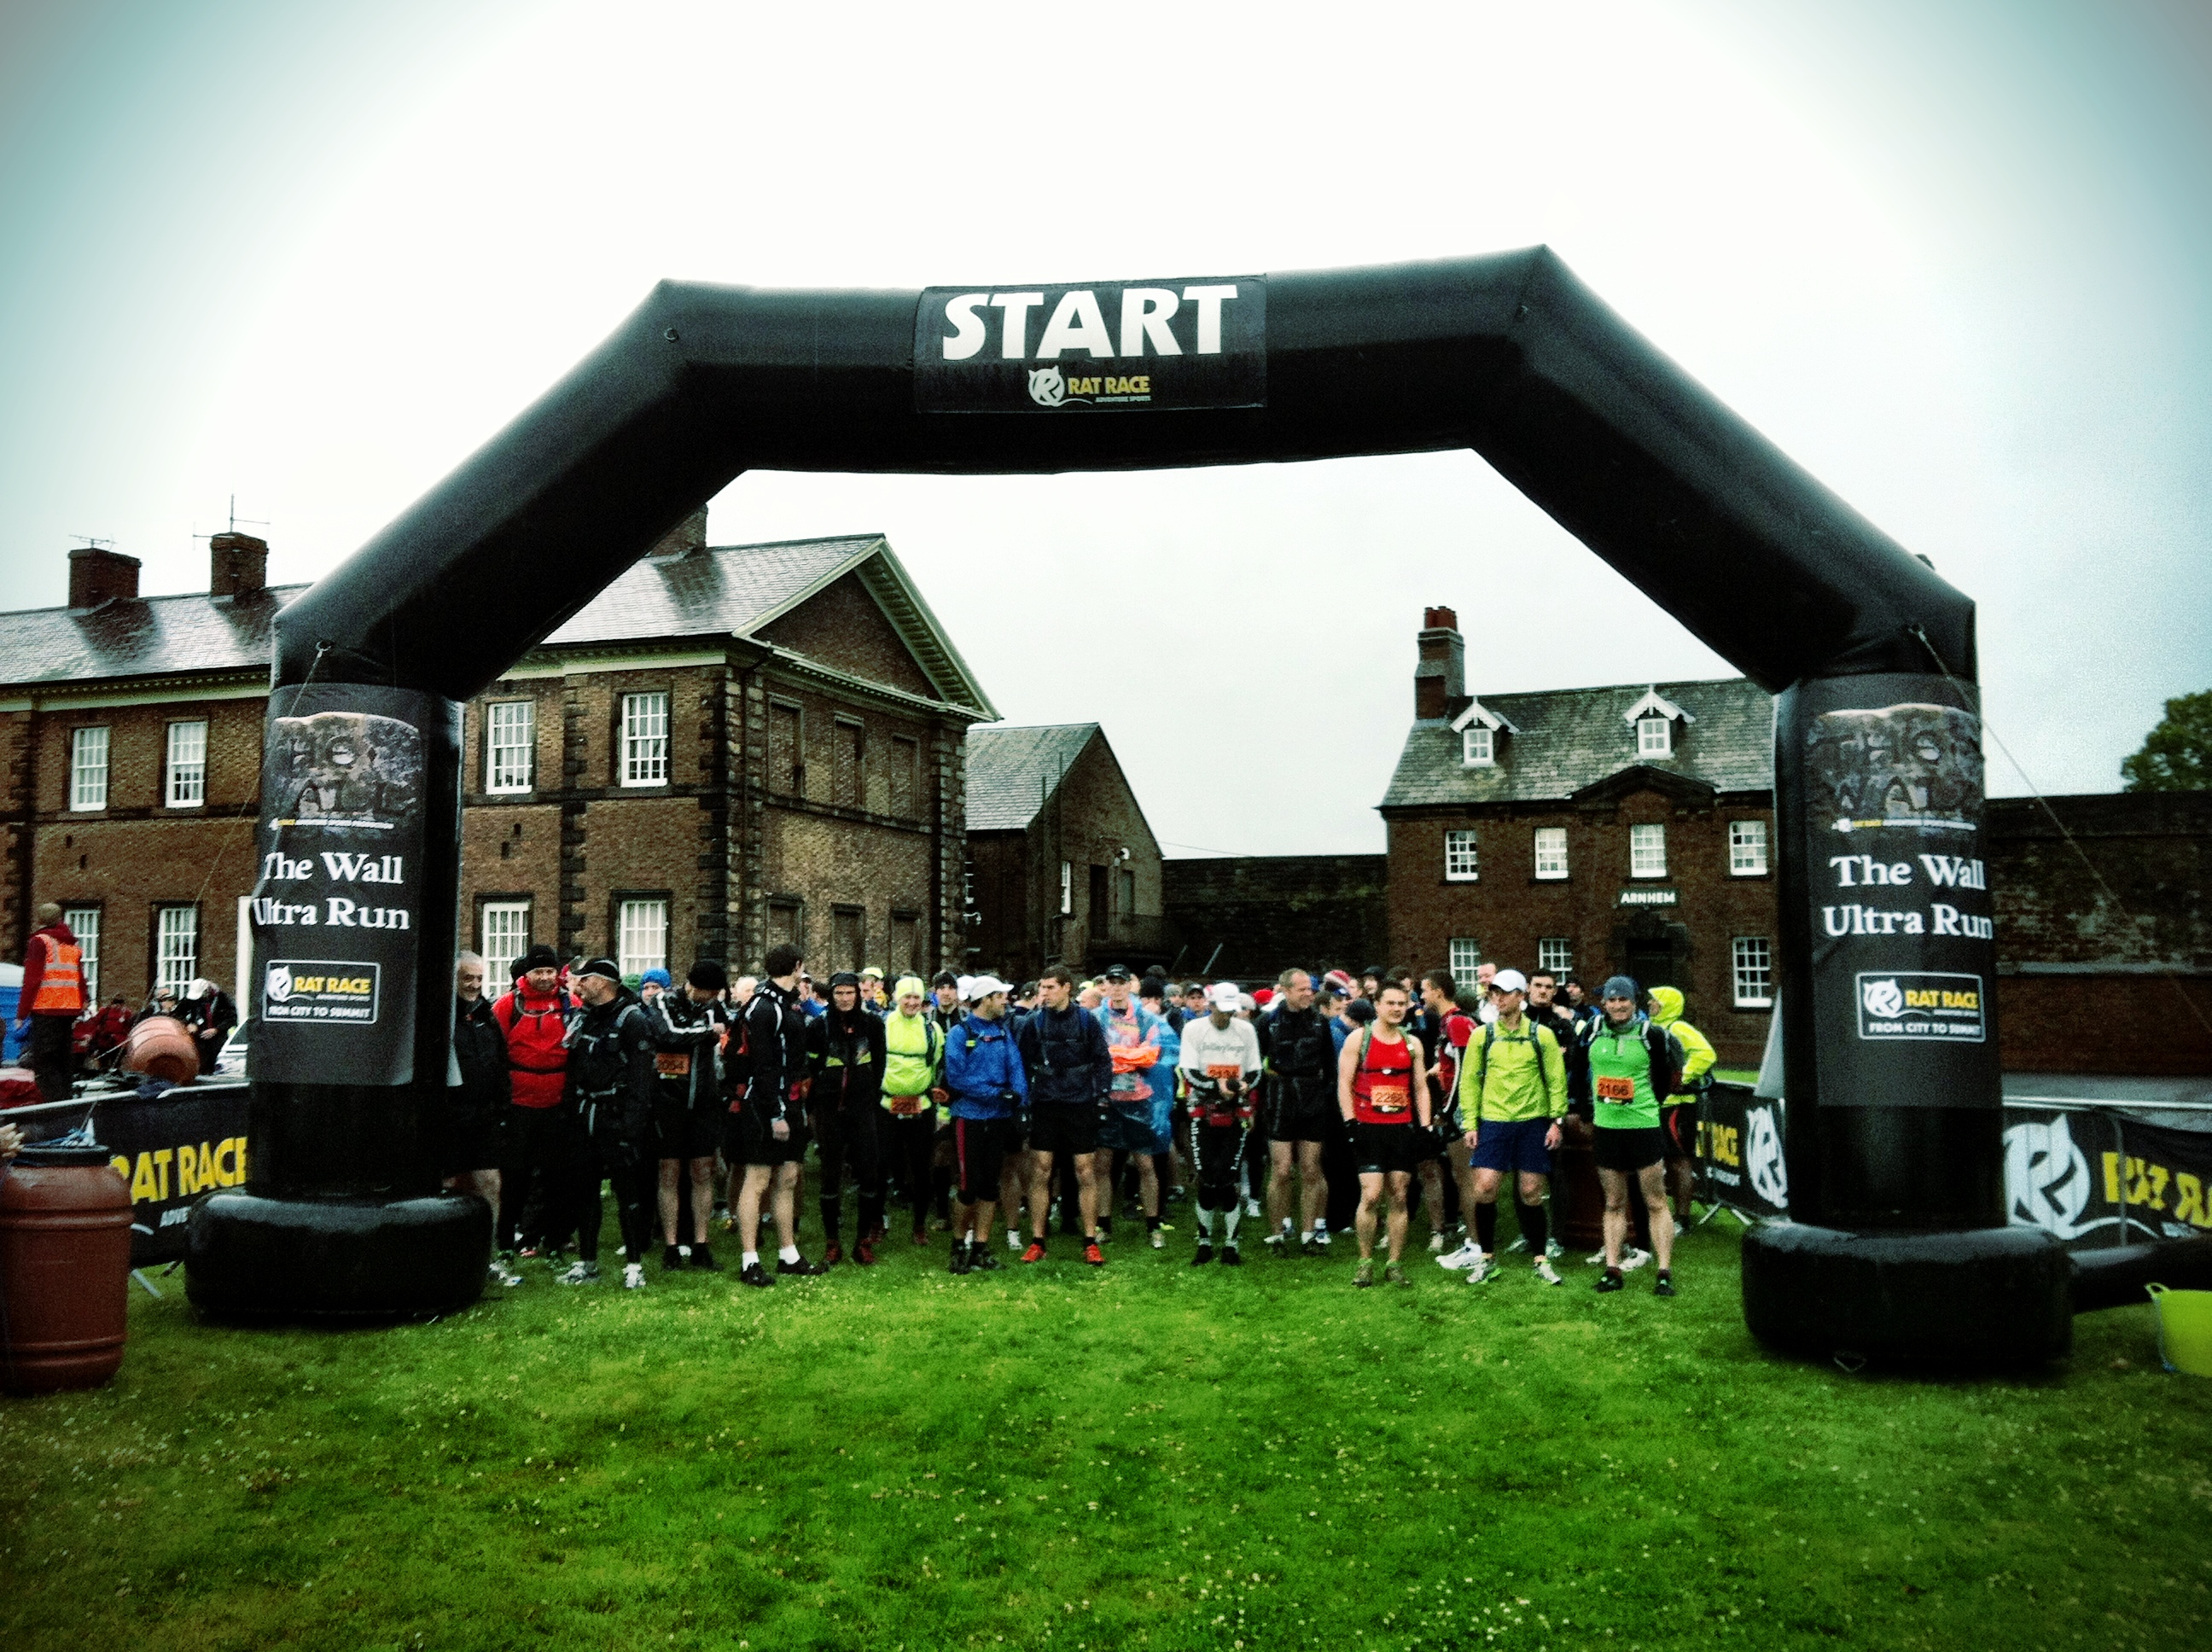 Carlisle Castele var startsted for The Wall Run